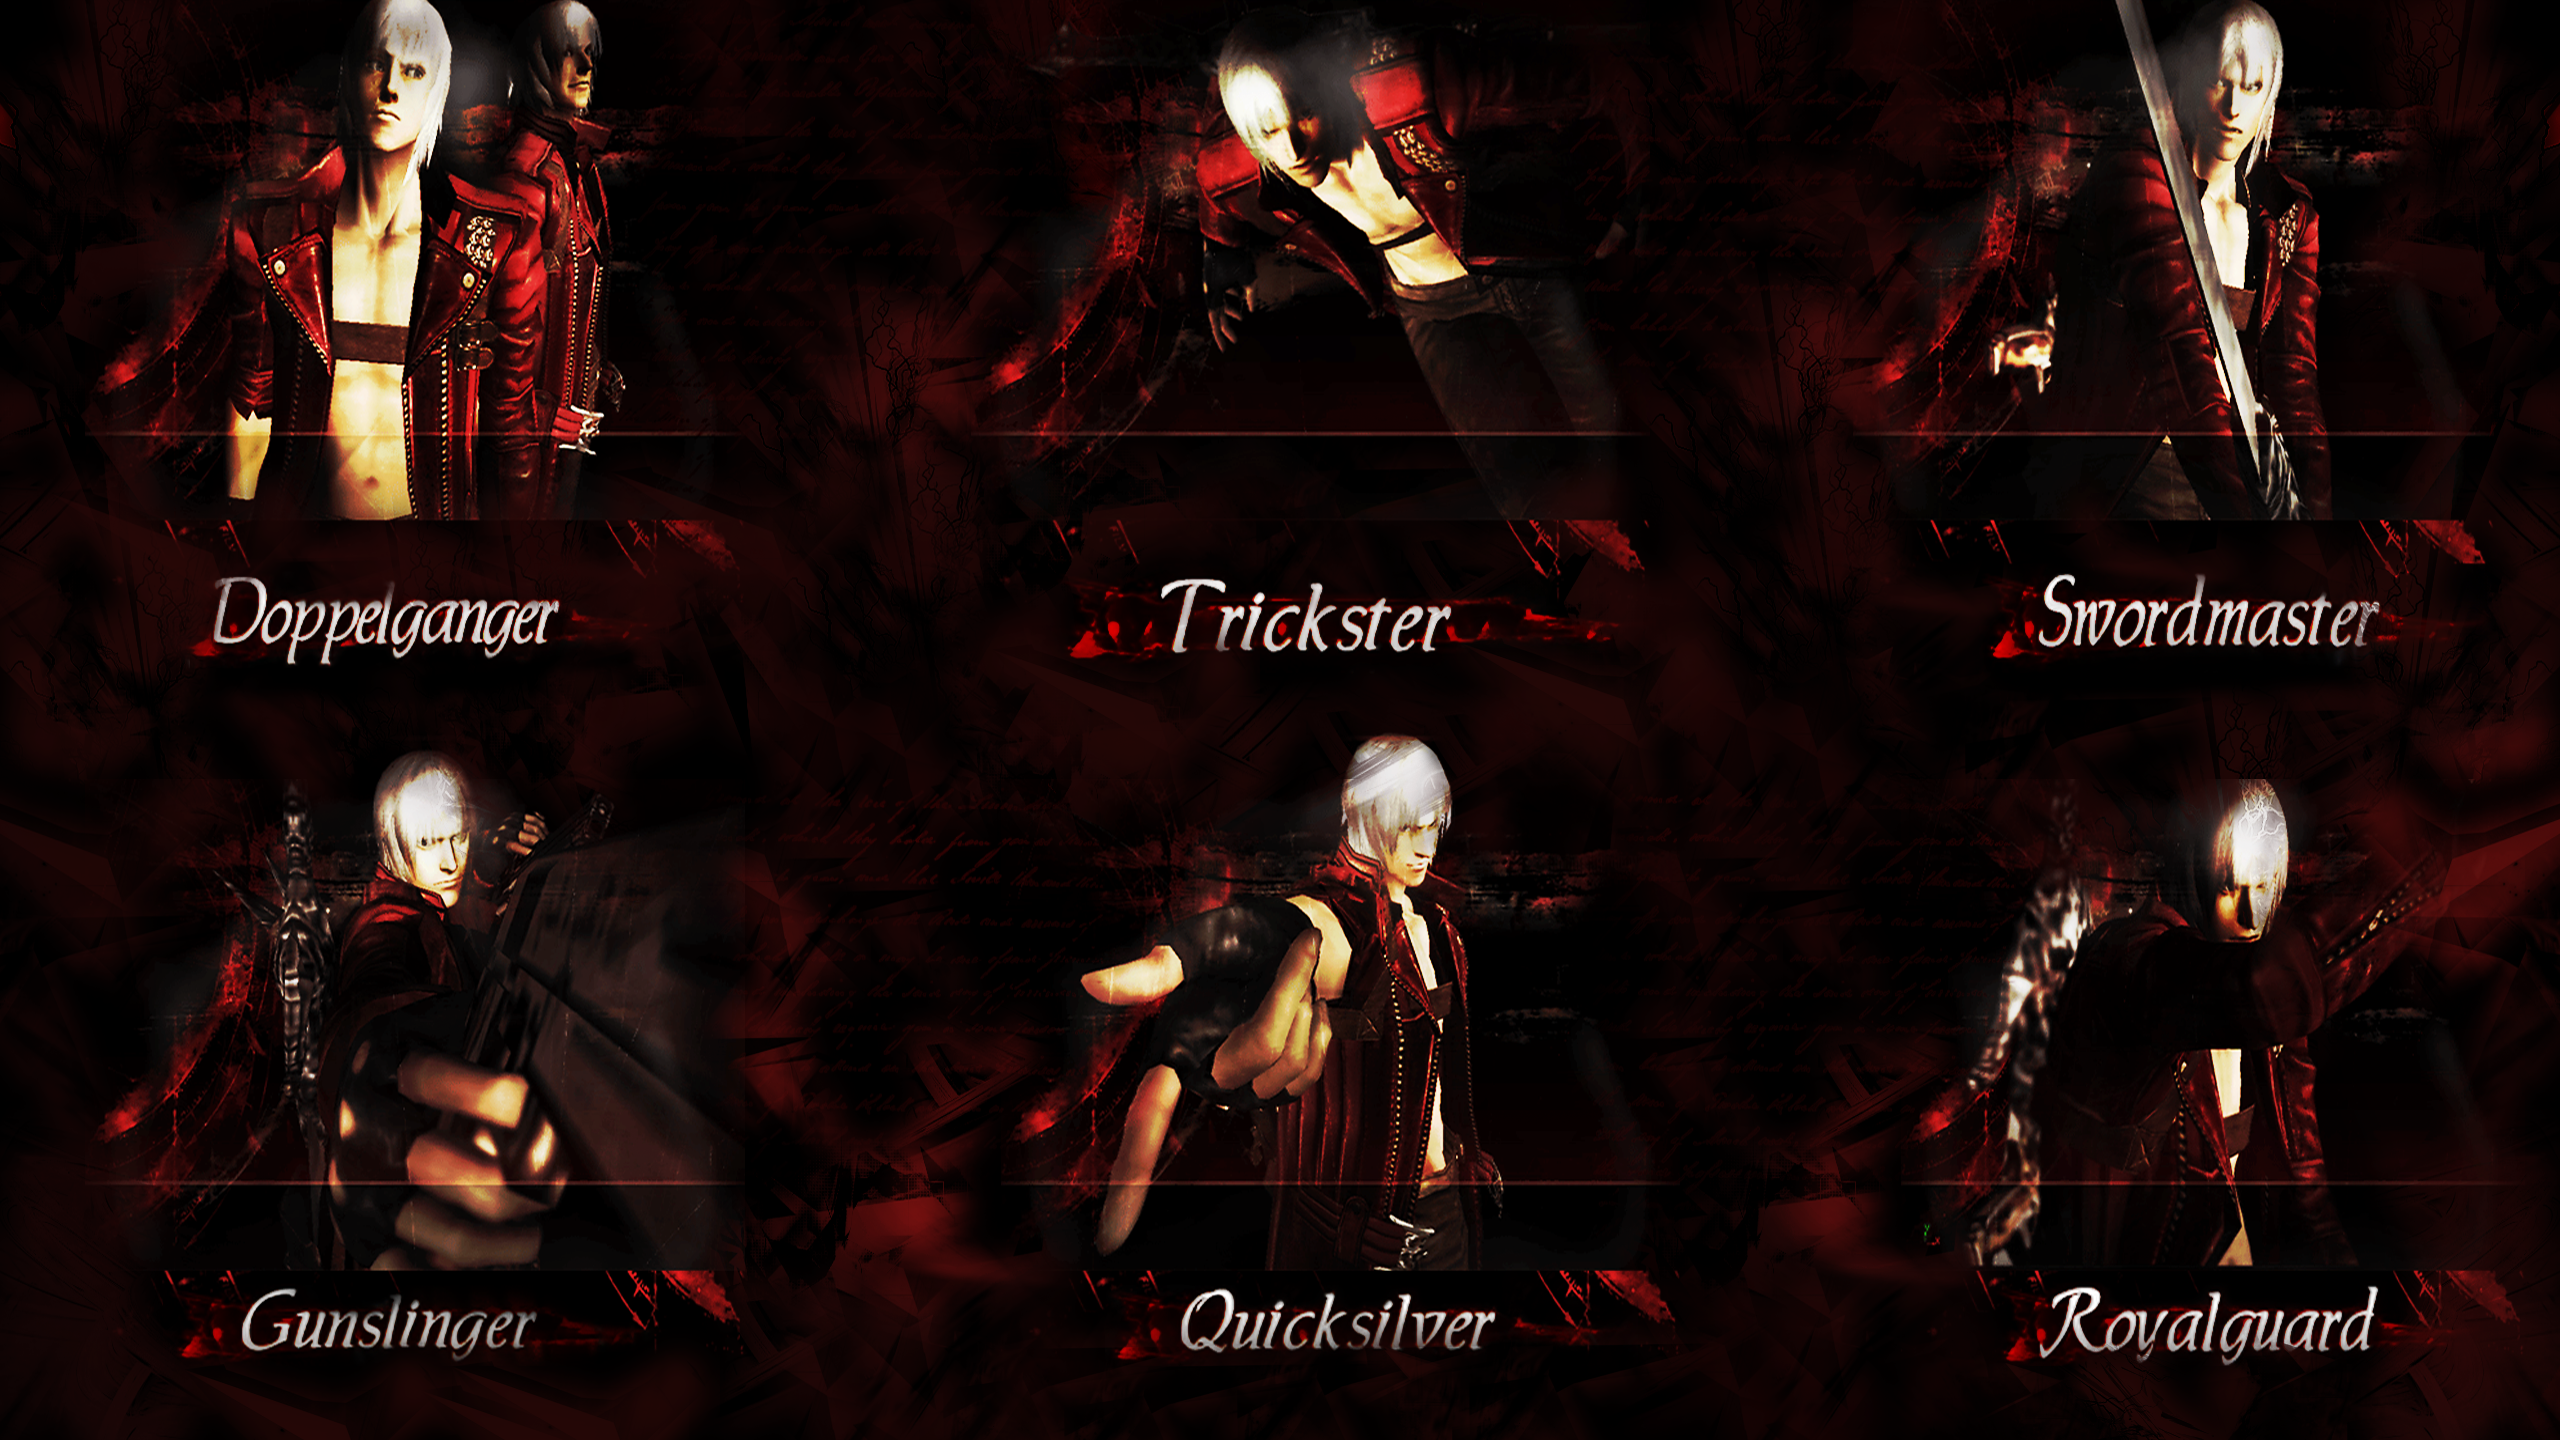 Devil May Cry 3 Se Style Wallpaper Version 2 By Elvin